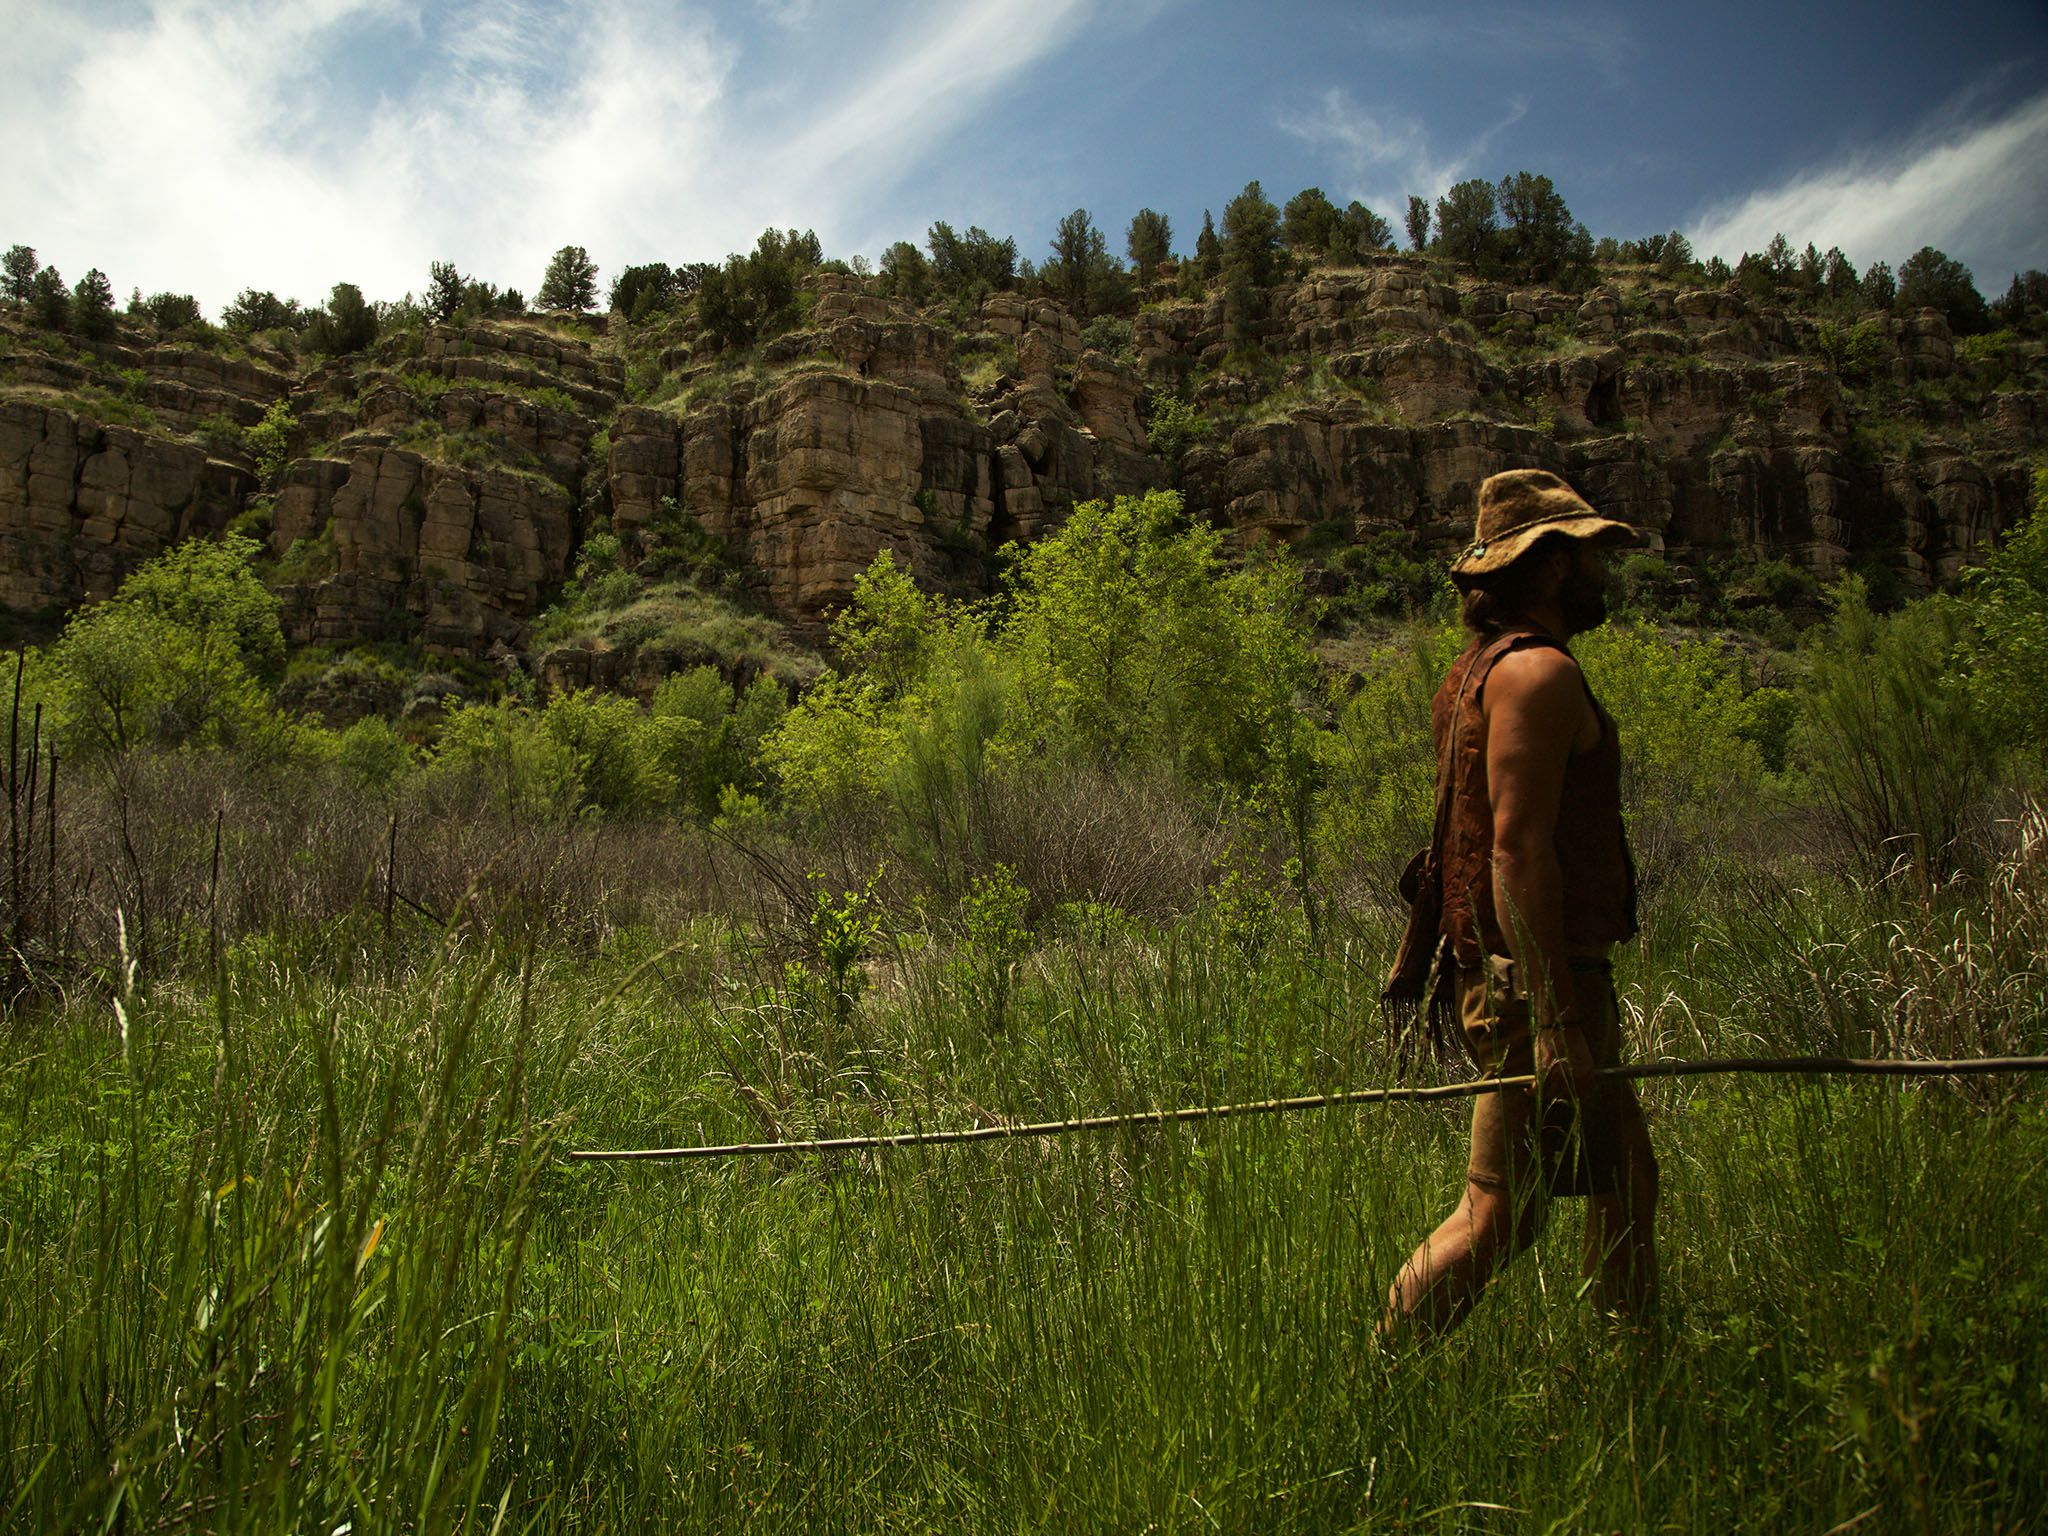 Ash Fork, AZ: Tobias WS walking through foliage. This image is from Live Free or Die. [Photo of the day - دسامبر 2015]